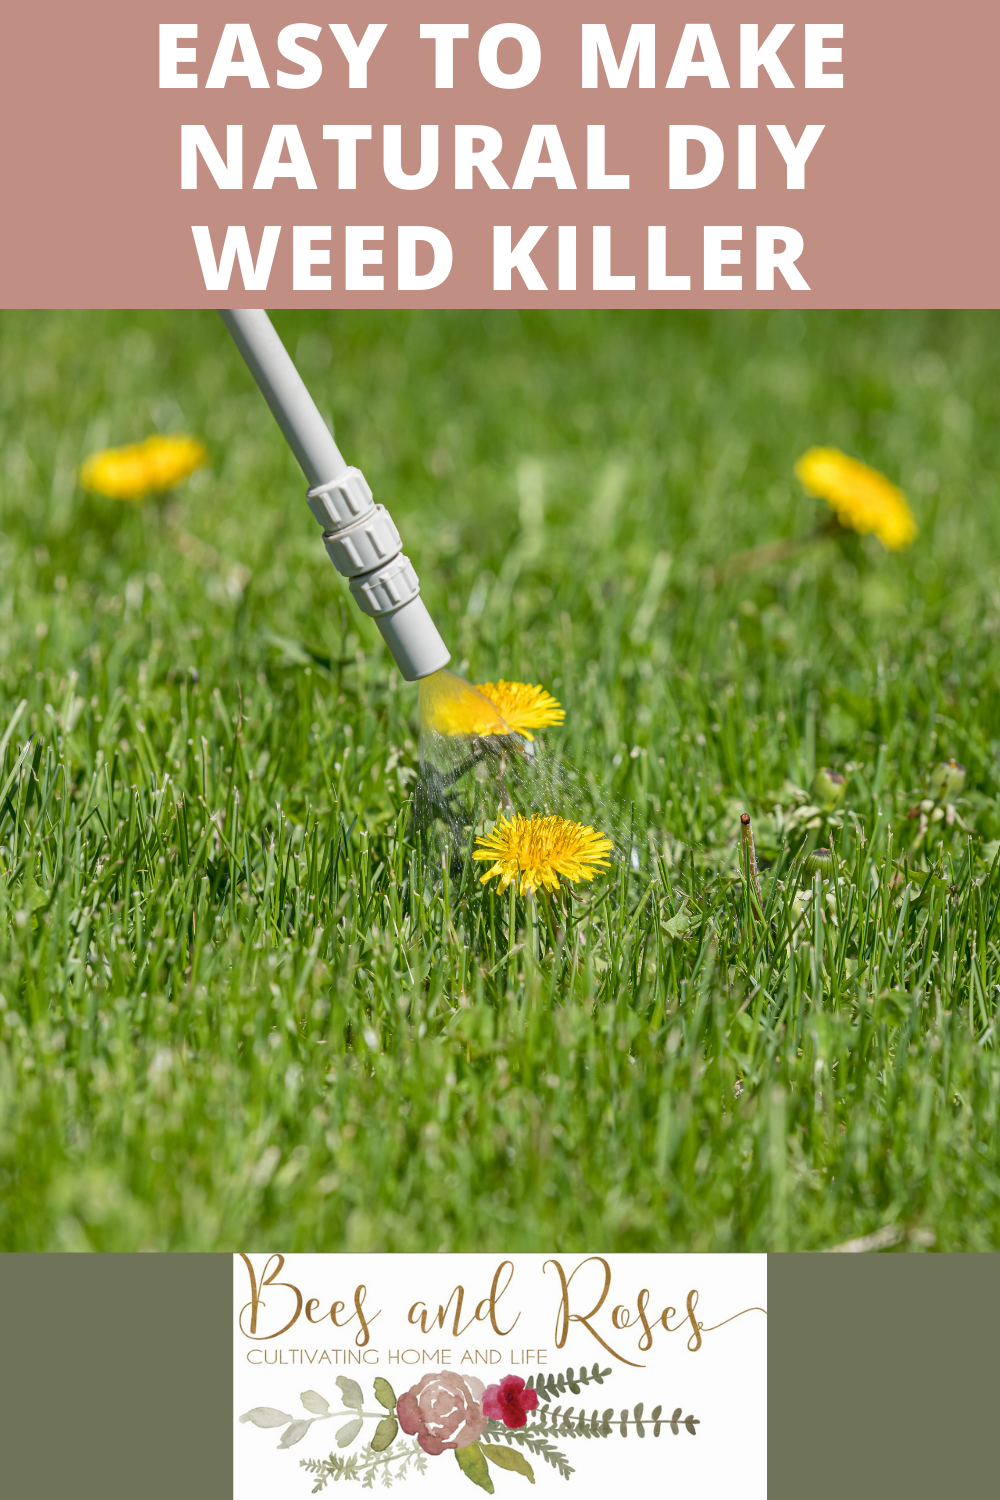 Beesandroses.com is your new guide to all things garden related! Find all all you need to know about growing healthy, thriving plants! Keep out unwanted weeds in a natural way with this super easy DIY weed killer!